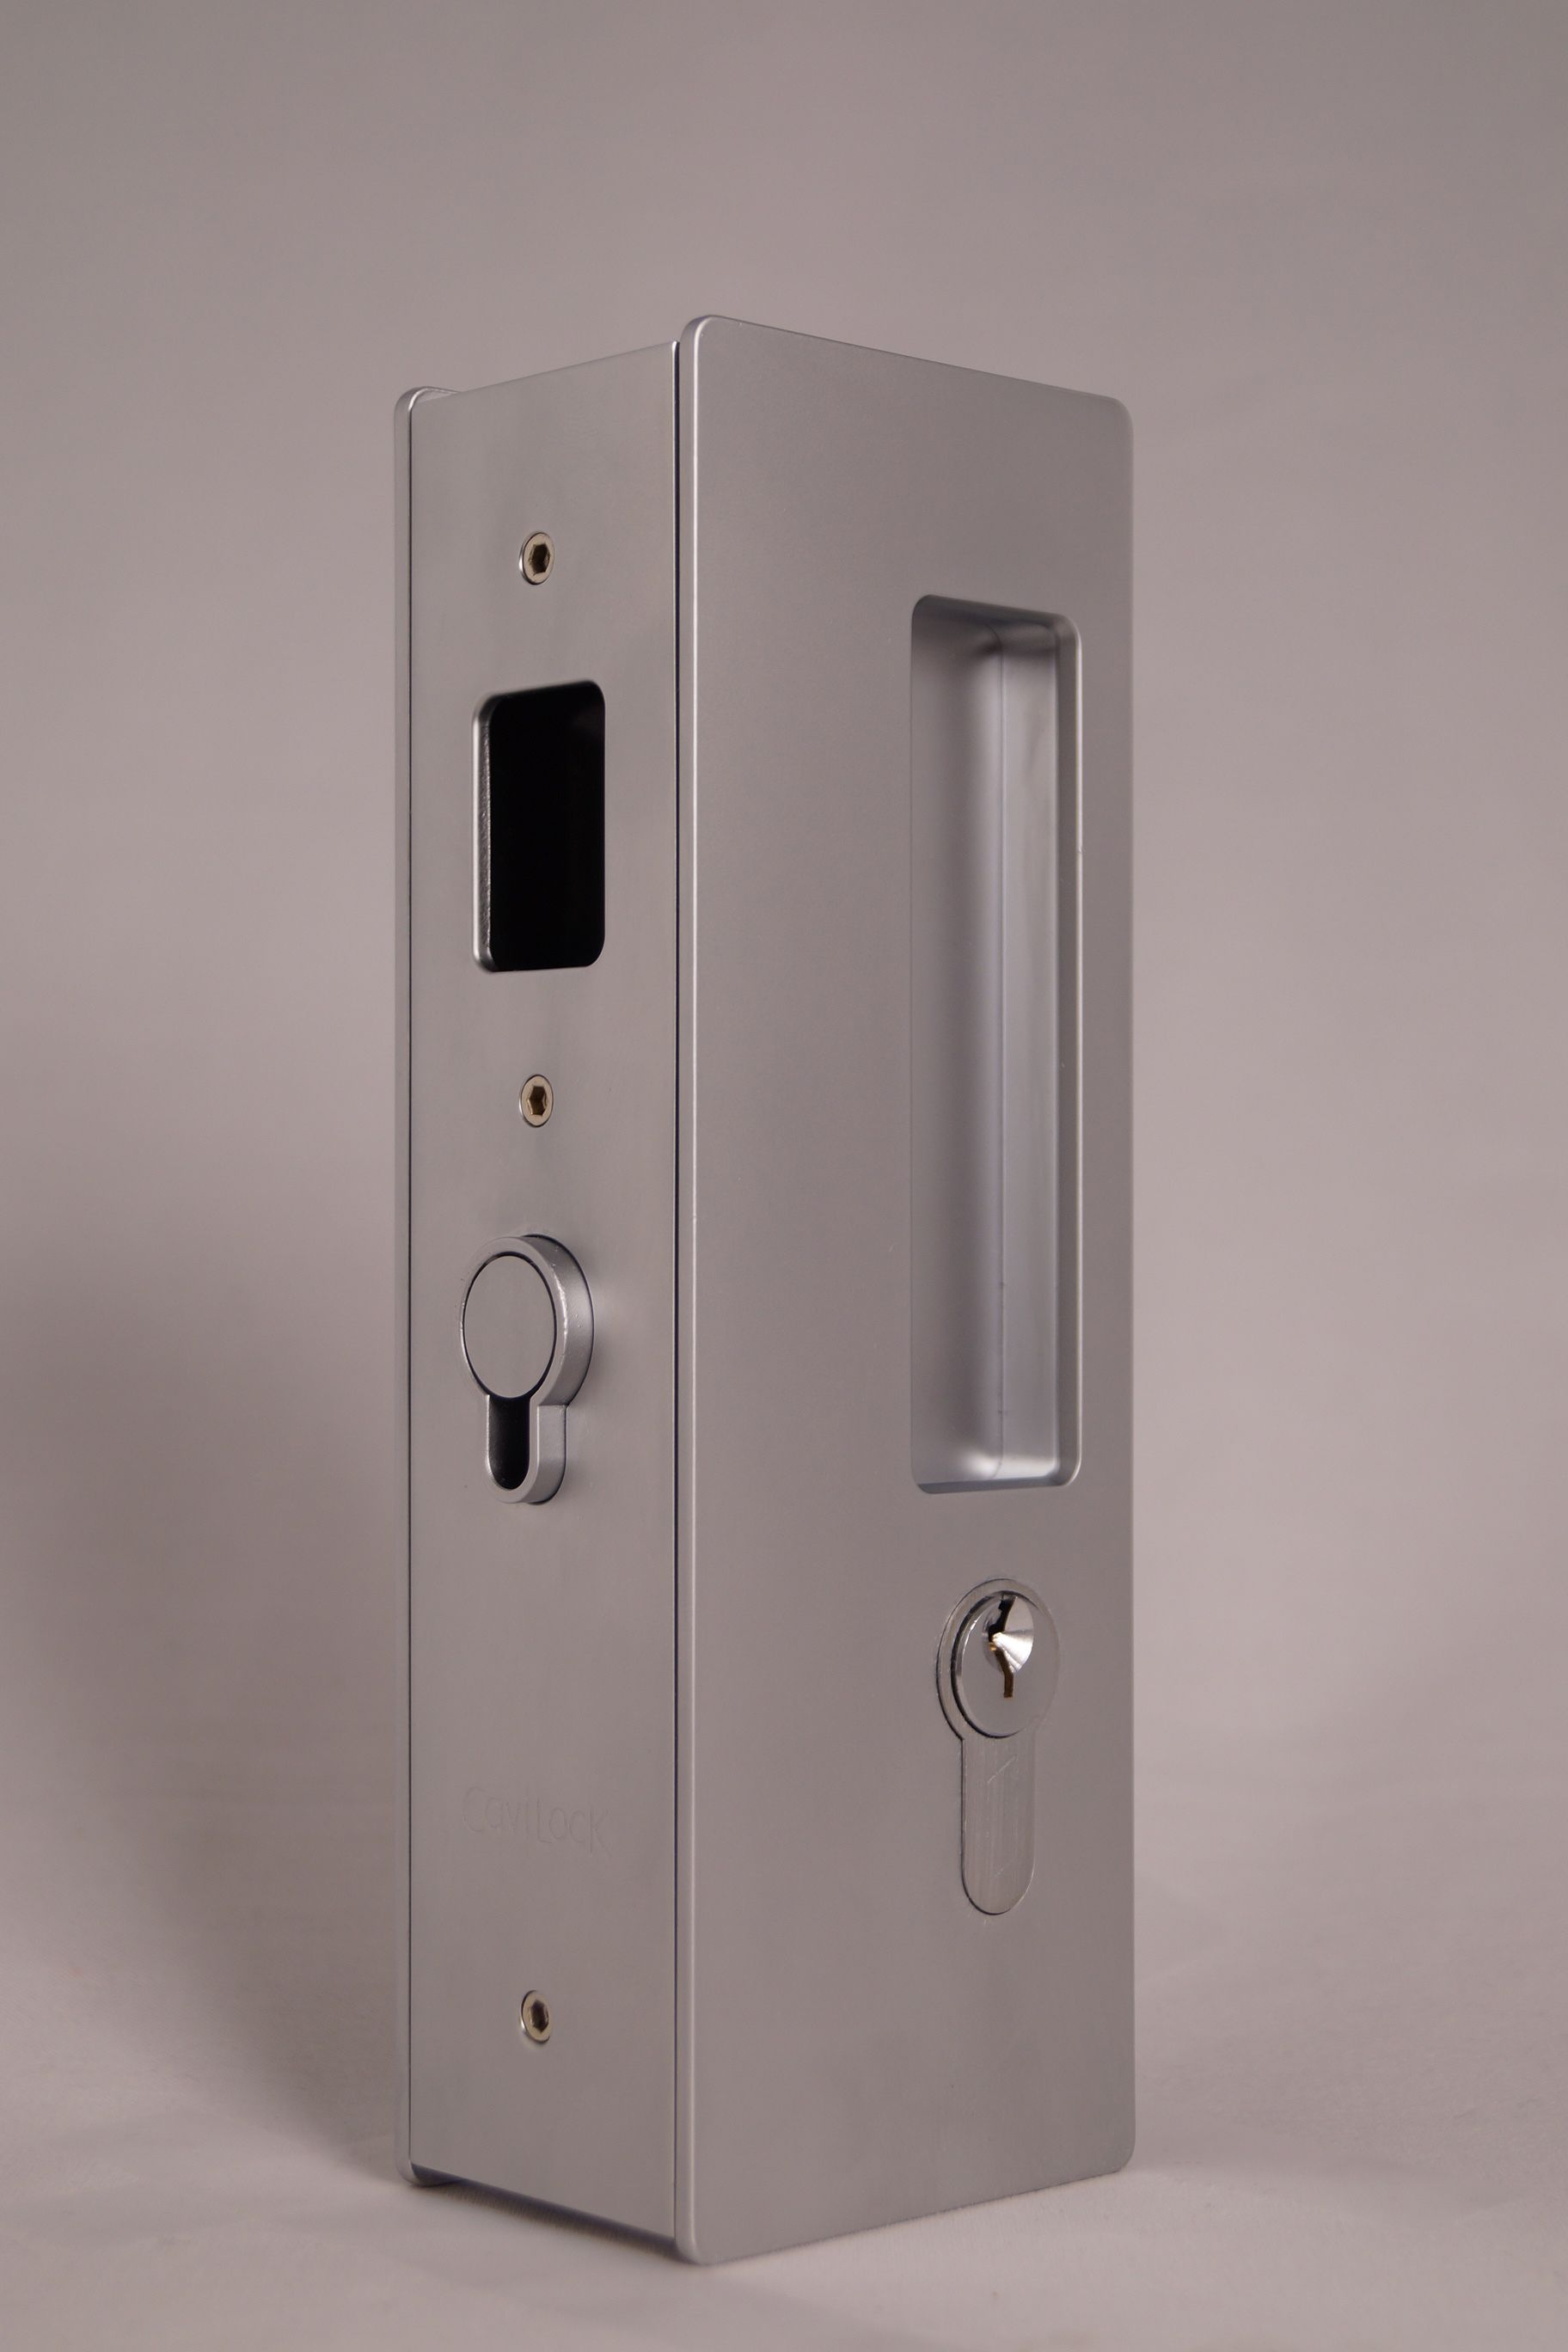 Cl400 Magnetic Key Locking Option In Matte Chrome Finish